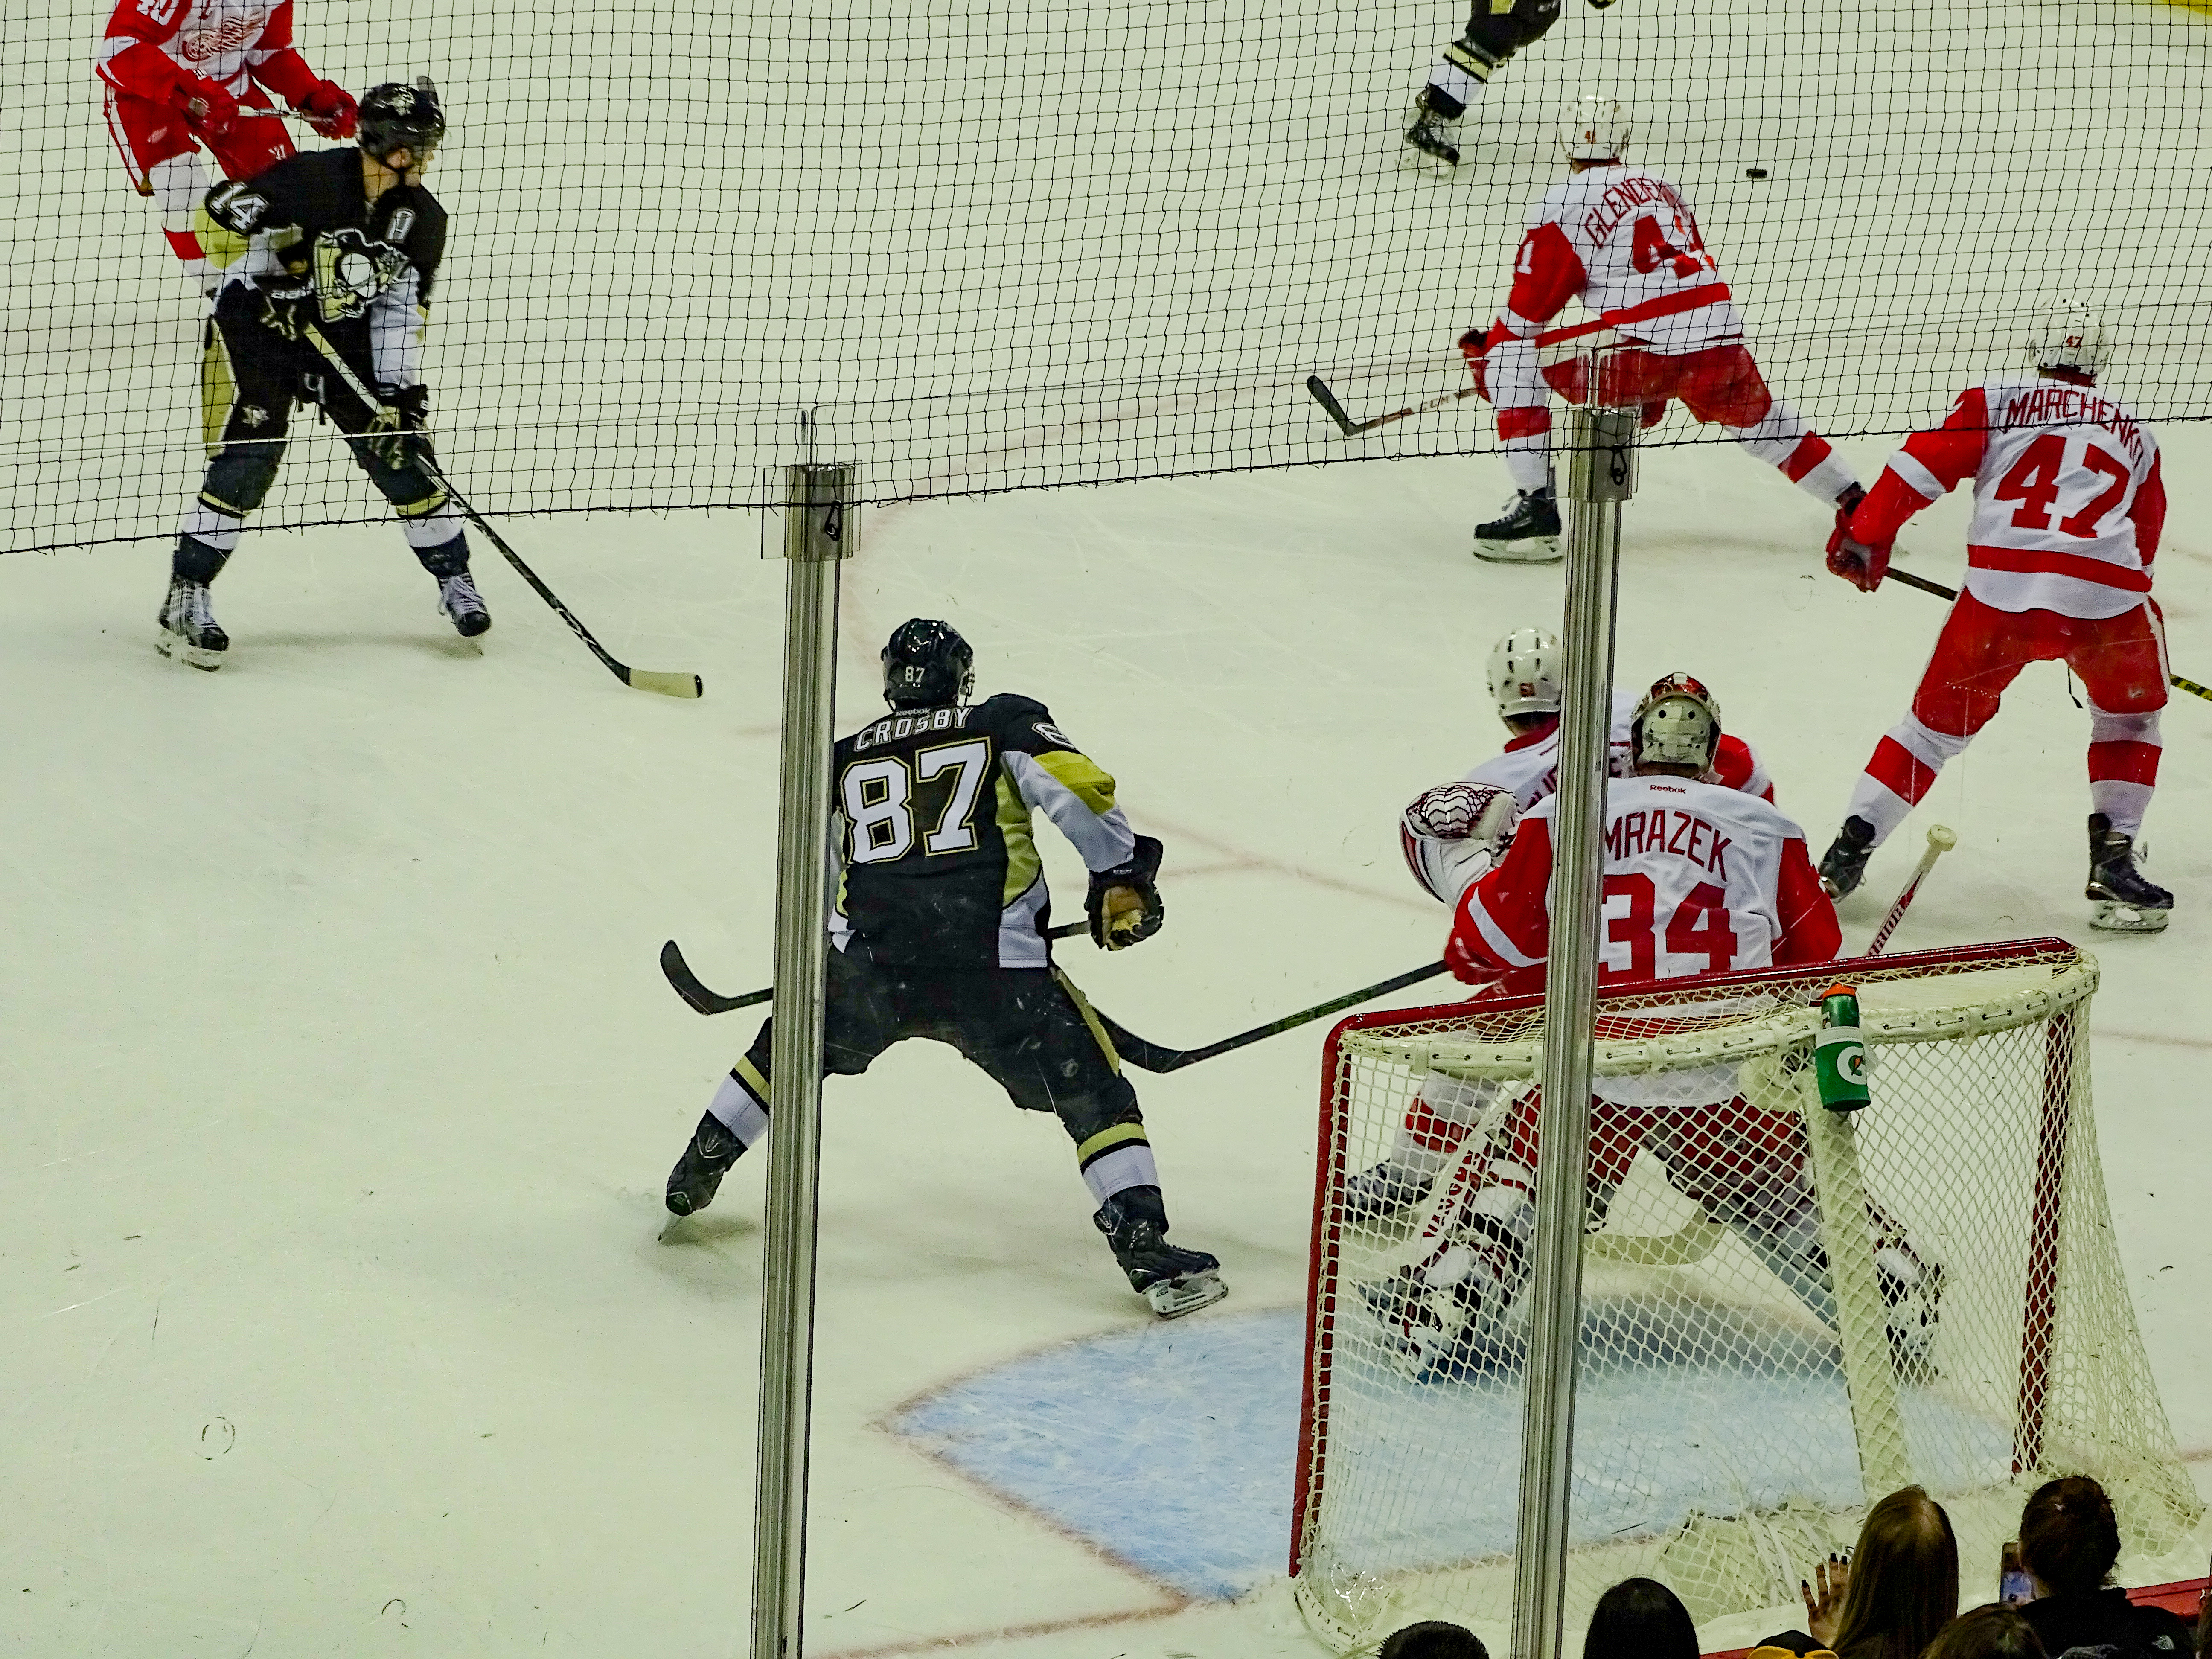 Sidney_Crosby_waits_on_shot_in_front_of_